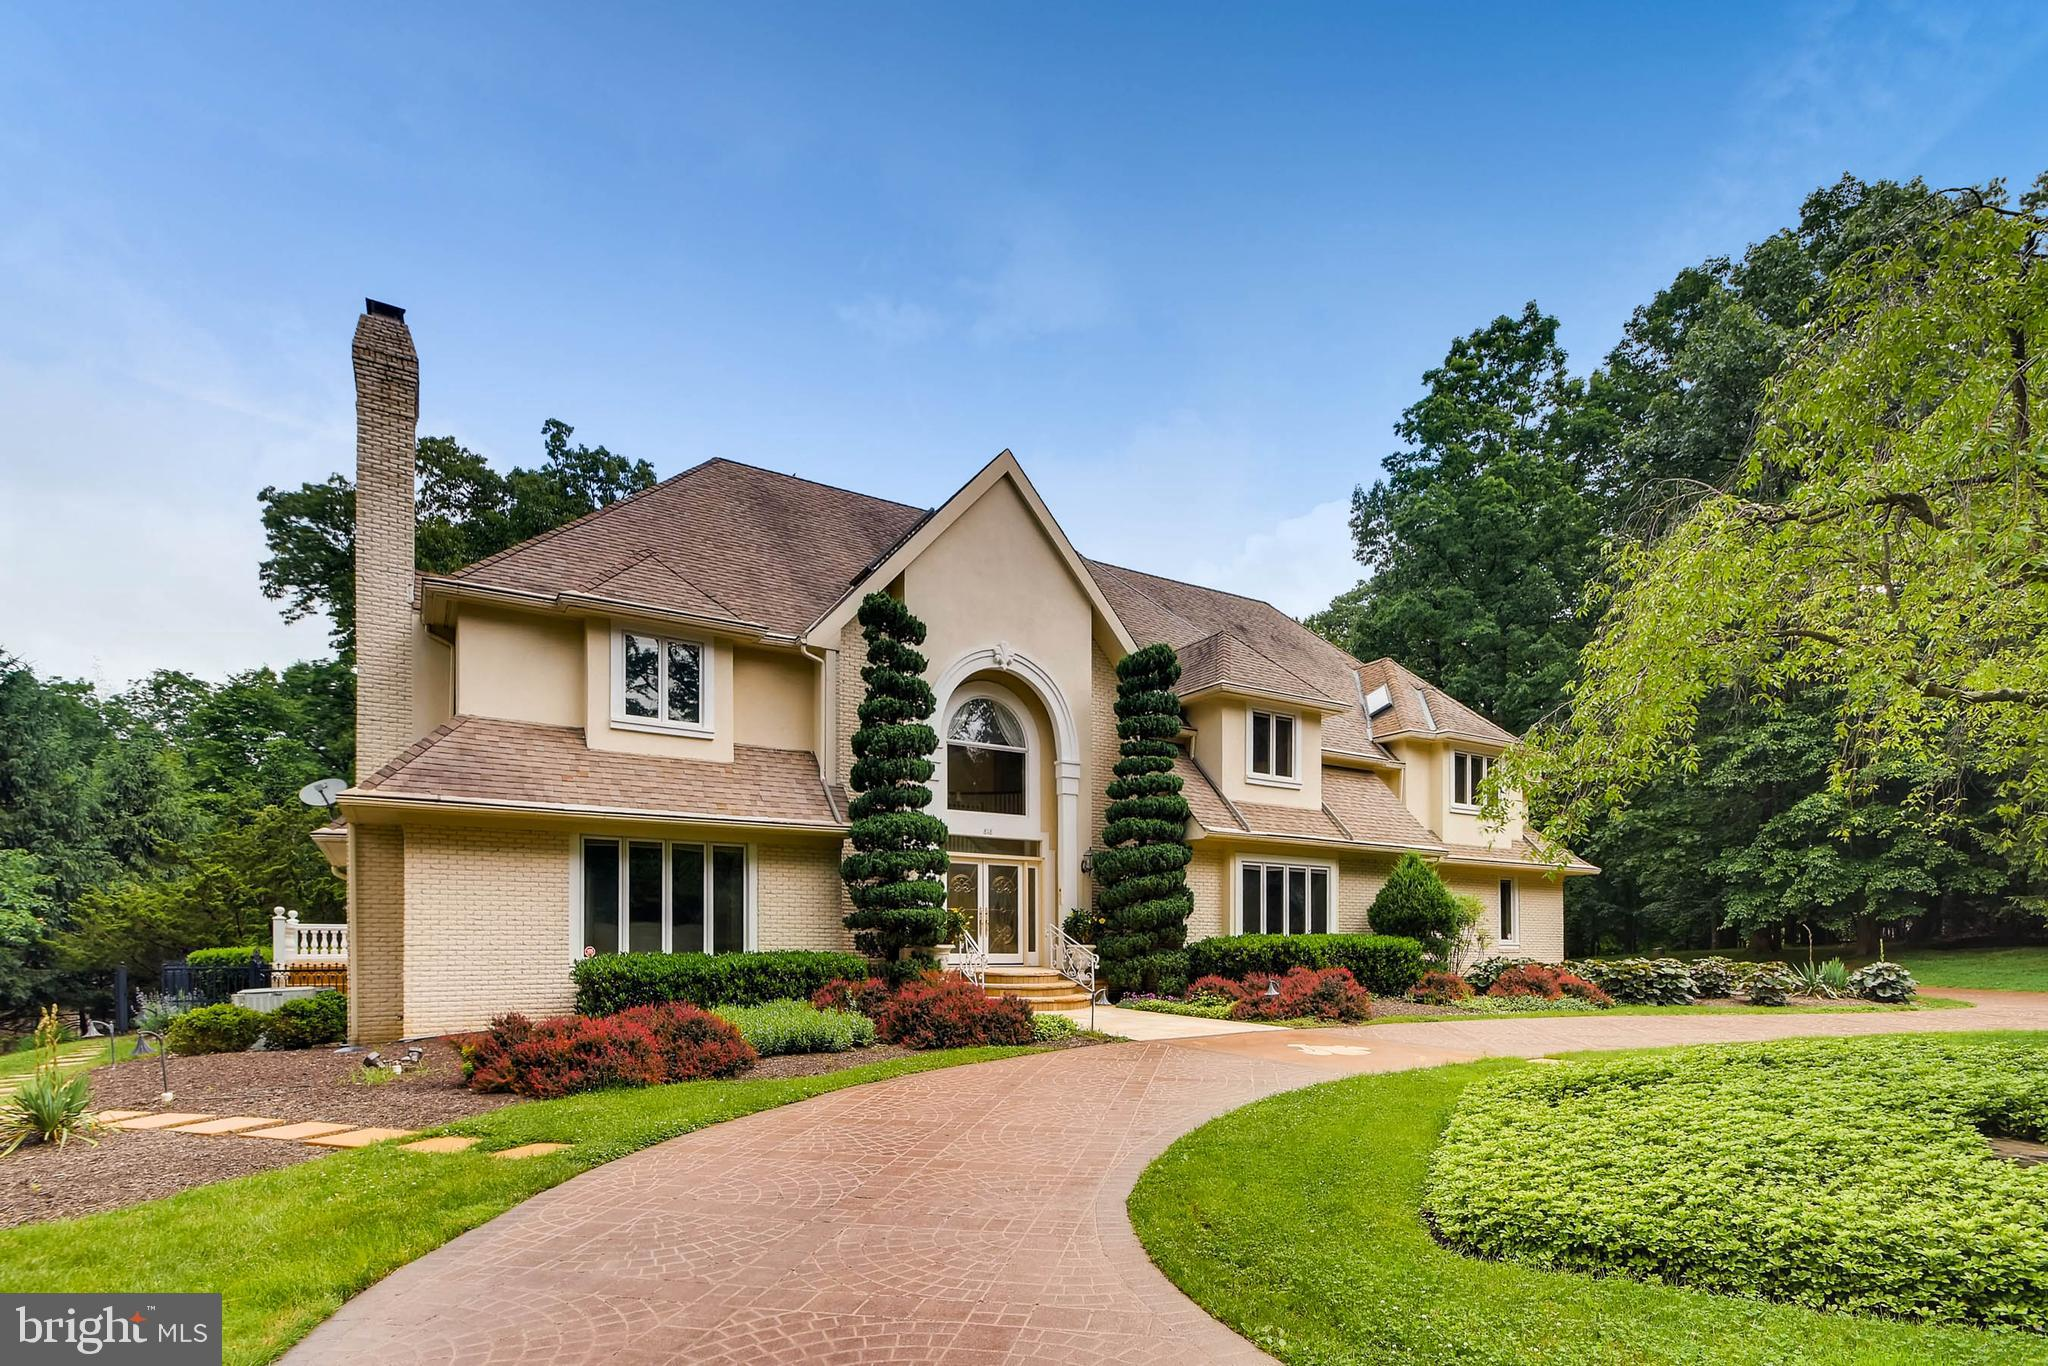 818 KATESFORD ROAD, HUNT VALLEY, MD 21030